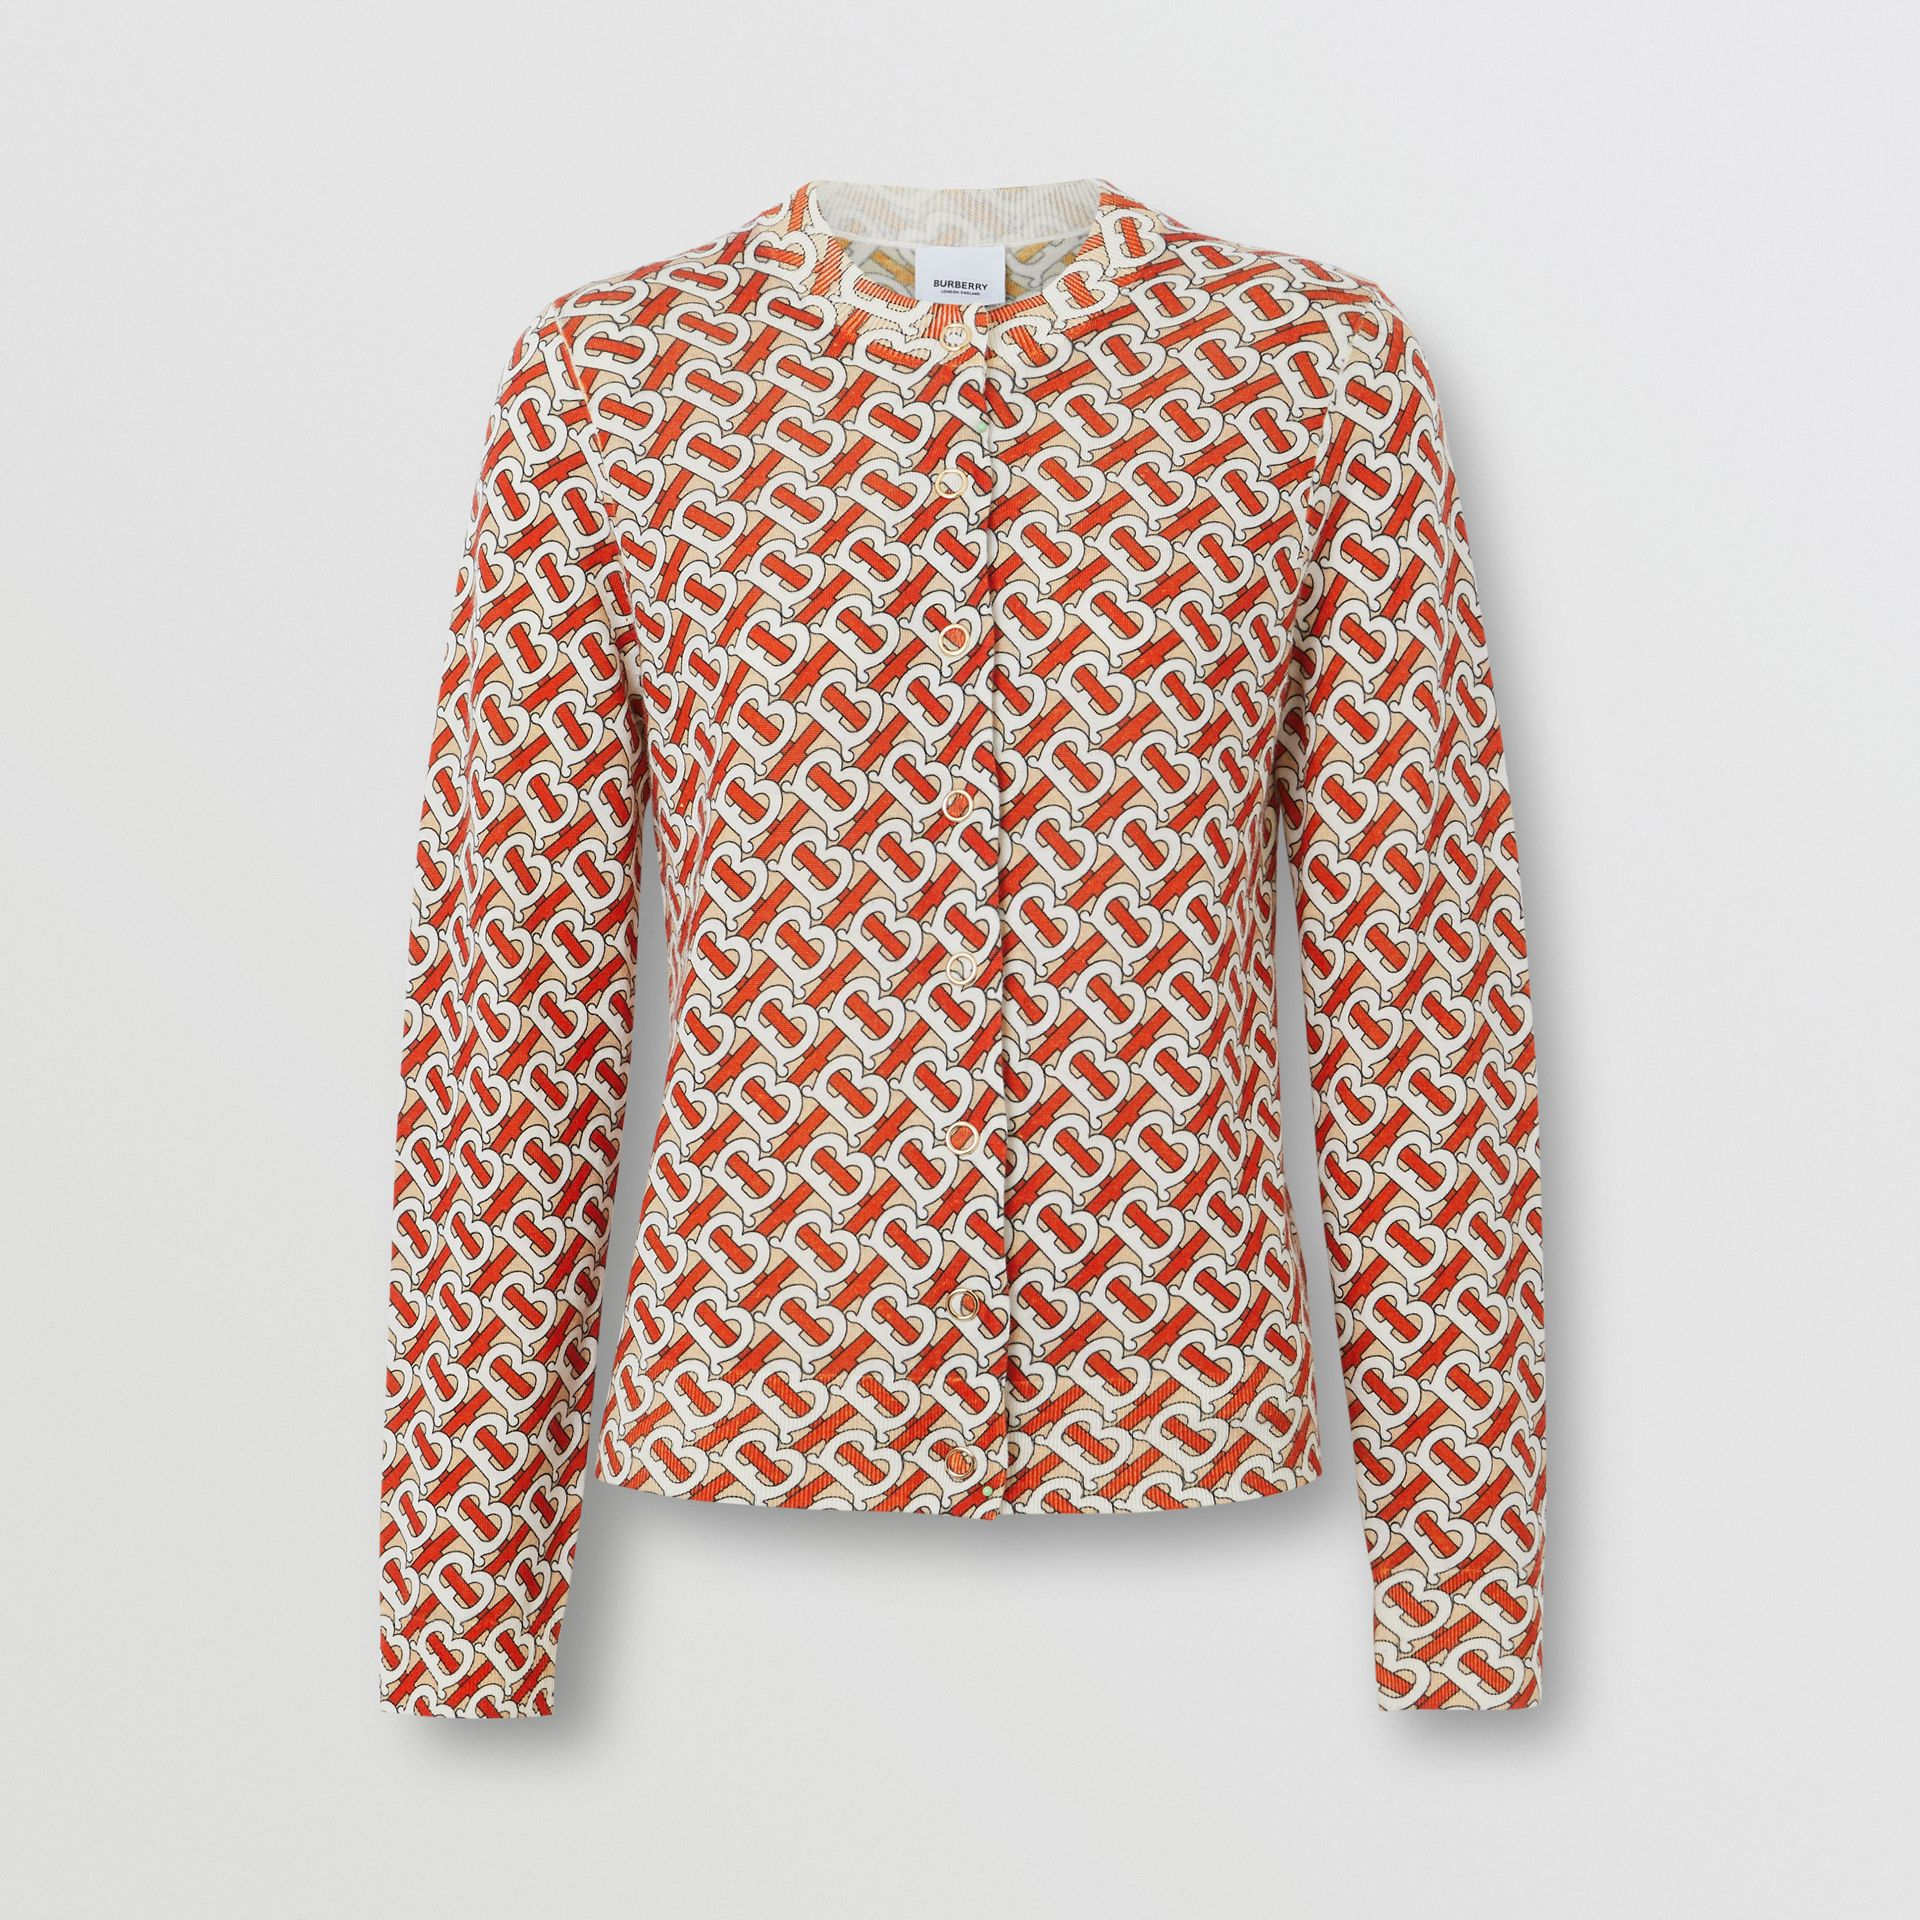 Monogram Print Merino Wool Cardigan in Vermillion - Women | Burberry United Kingdom - gallery image 3